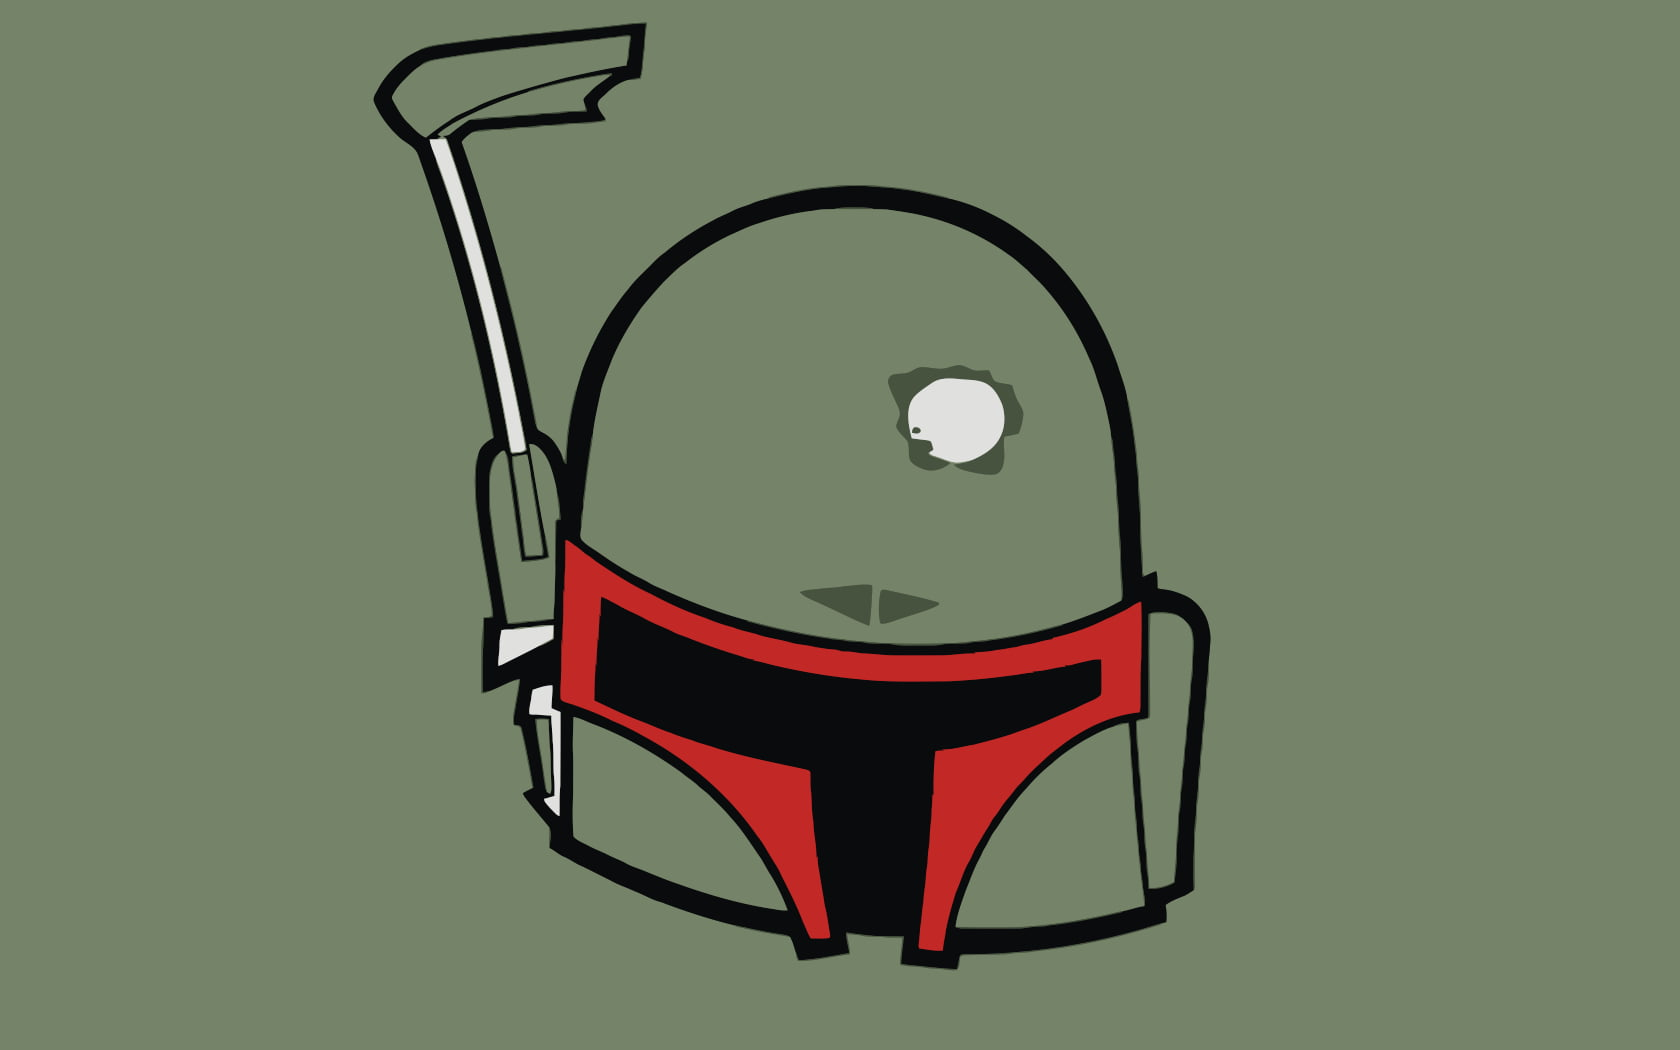 Boba Fett helmet clip art HD wallpaper.